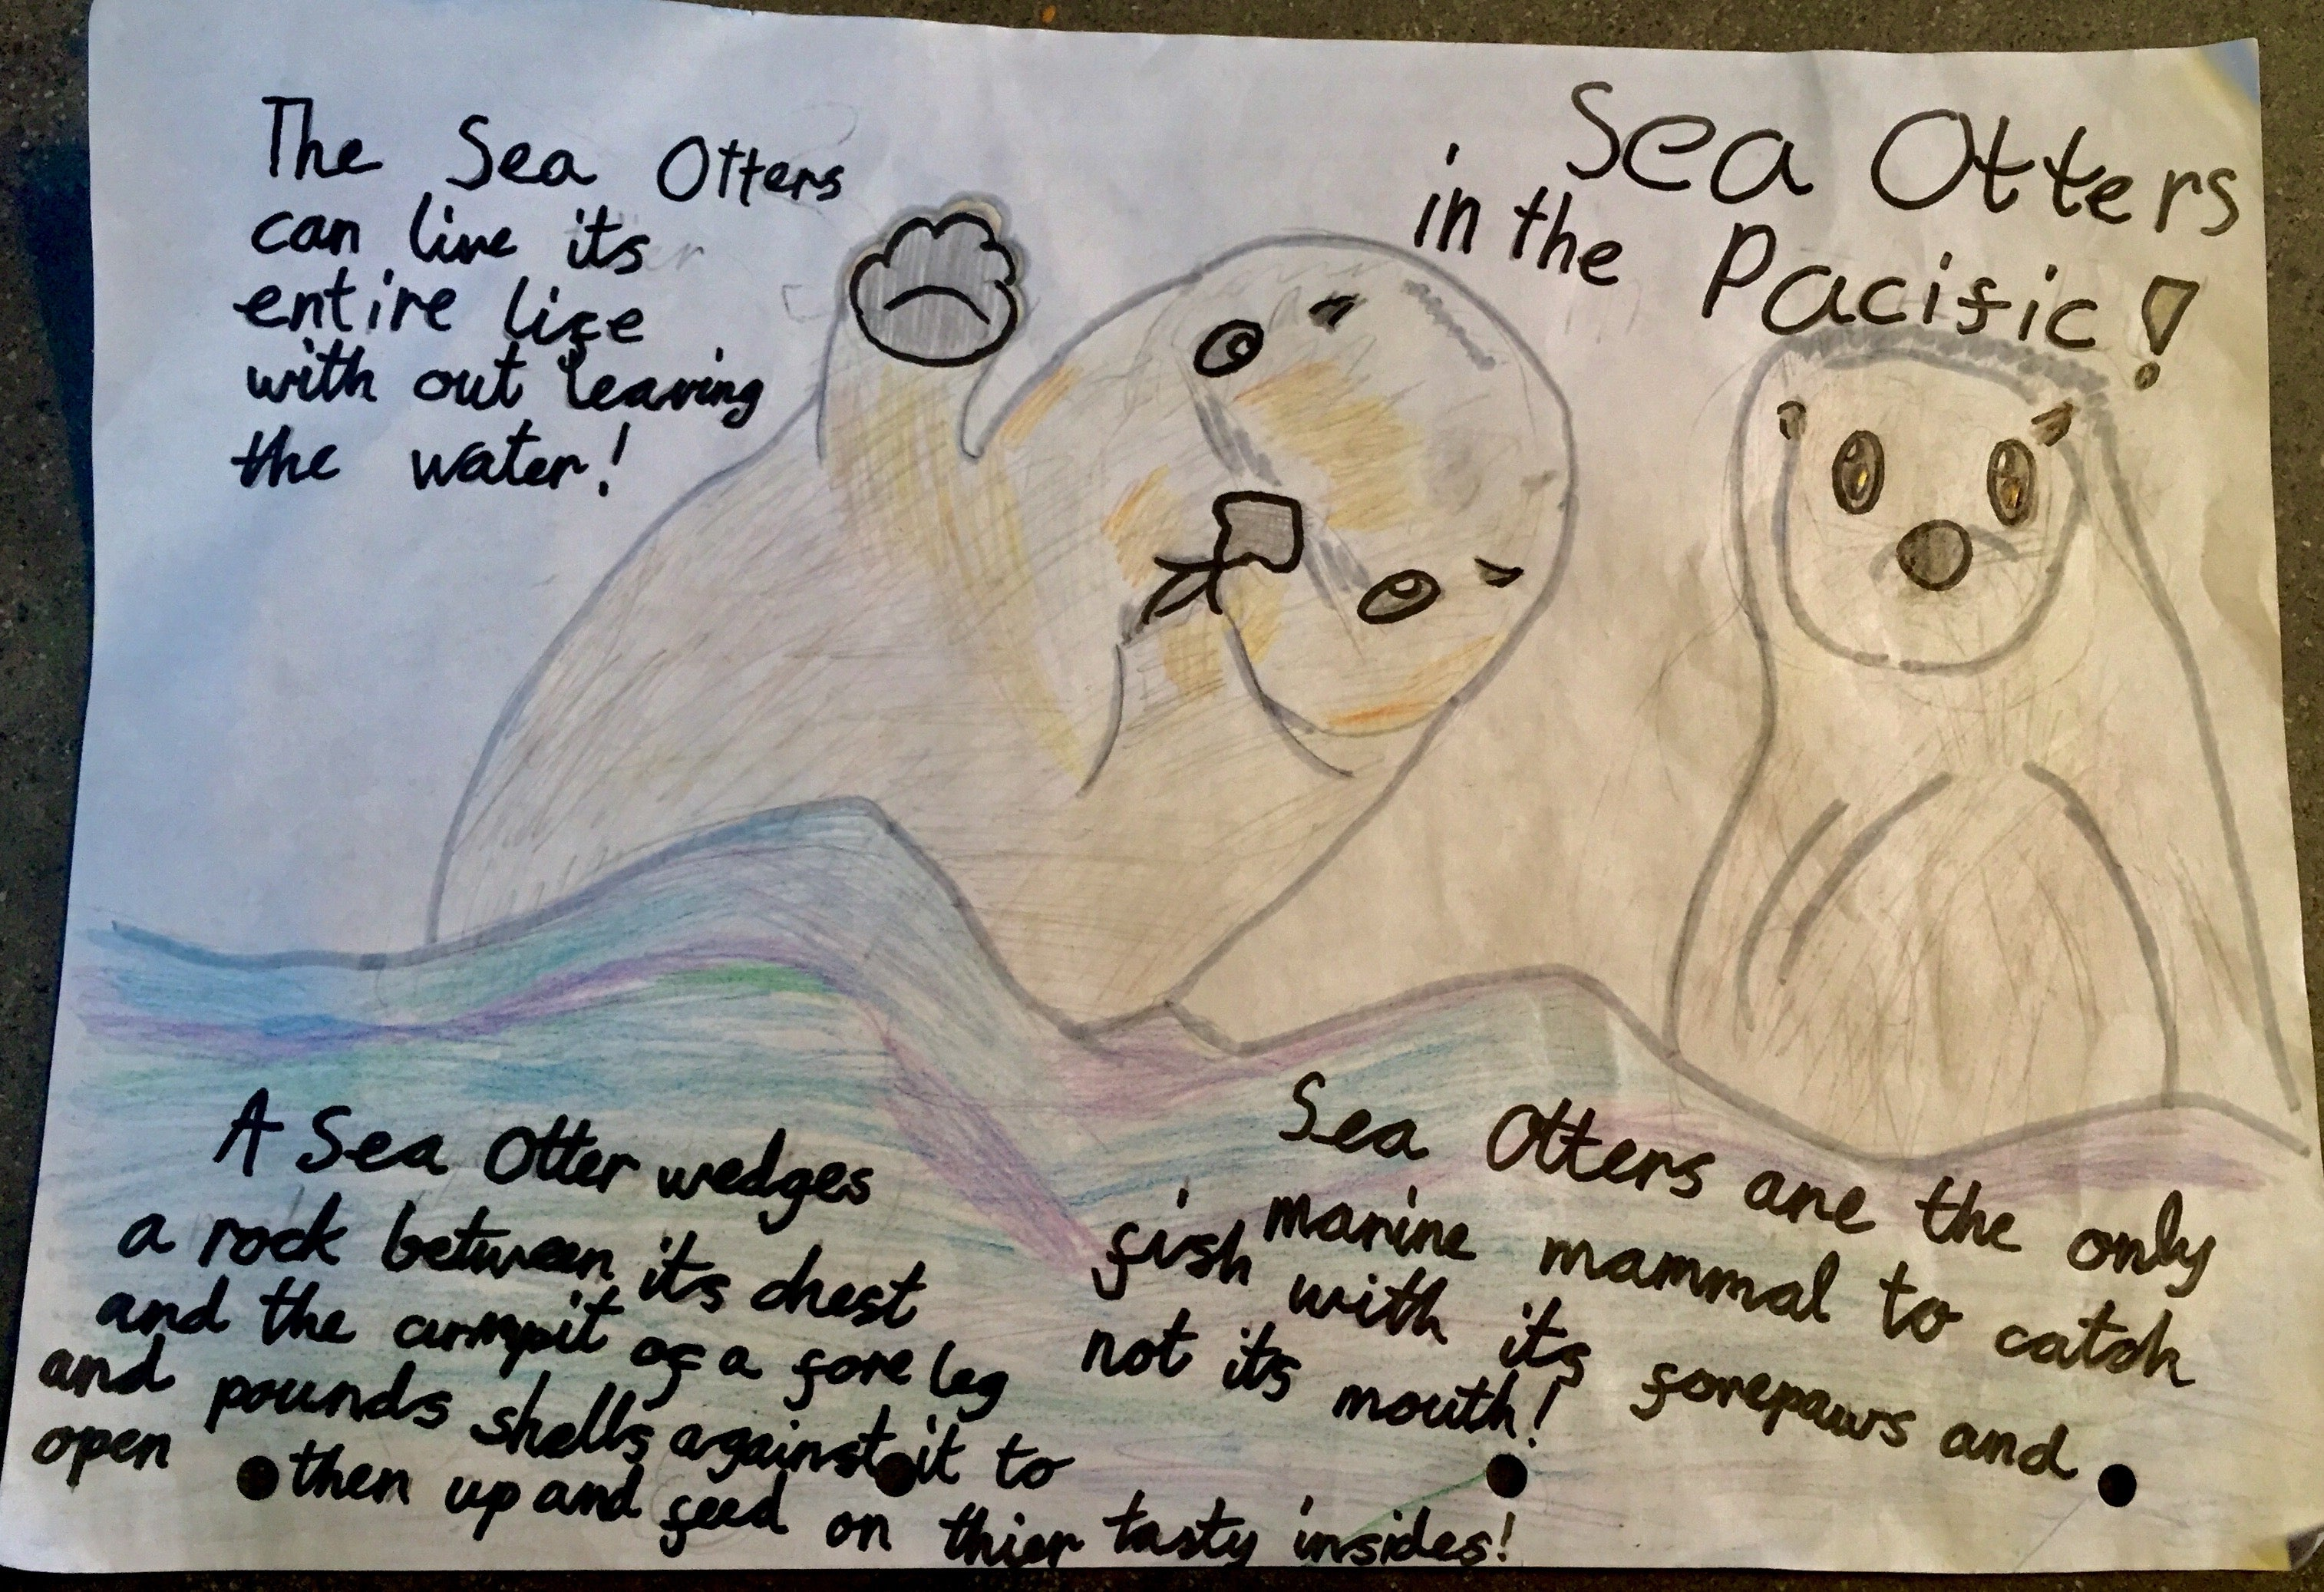 Pacific Ocean Creatures: Competition winners